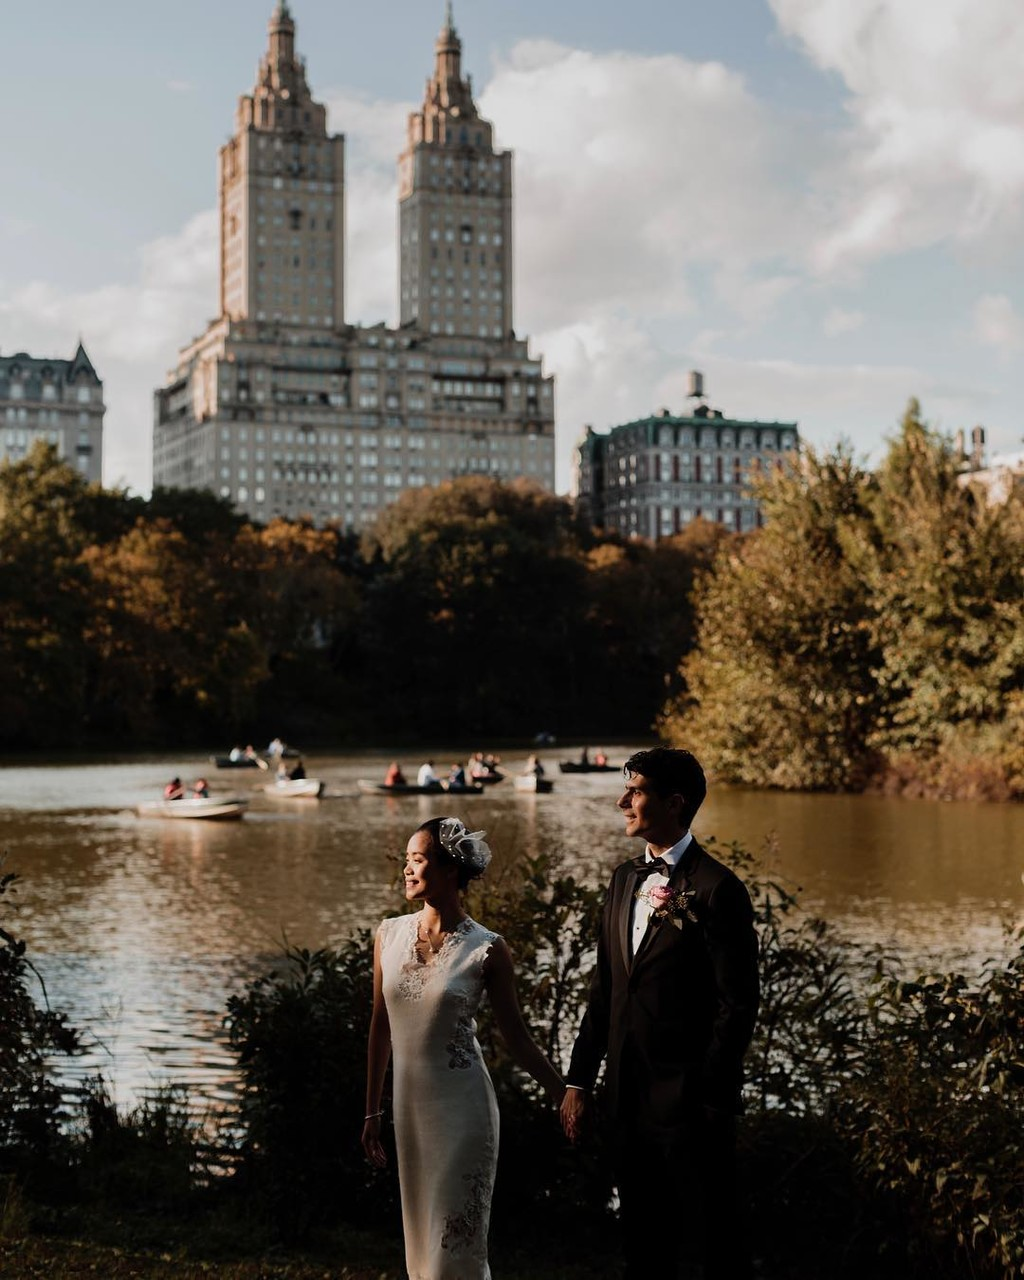 Back in New York and I can't believe 2019 is just a few days away! One of my favorite things this year was photographing elopements